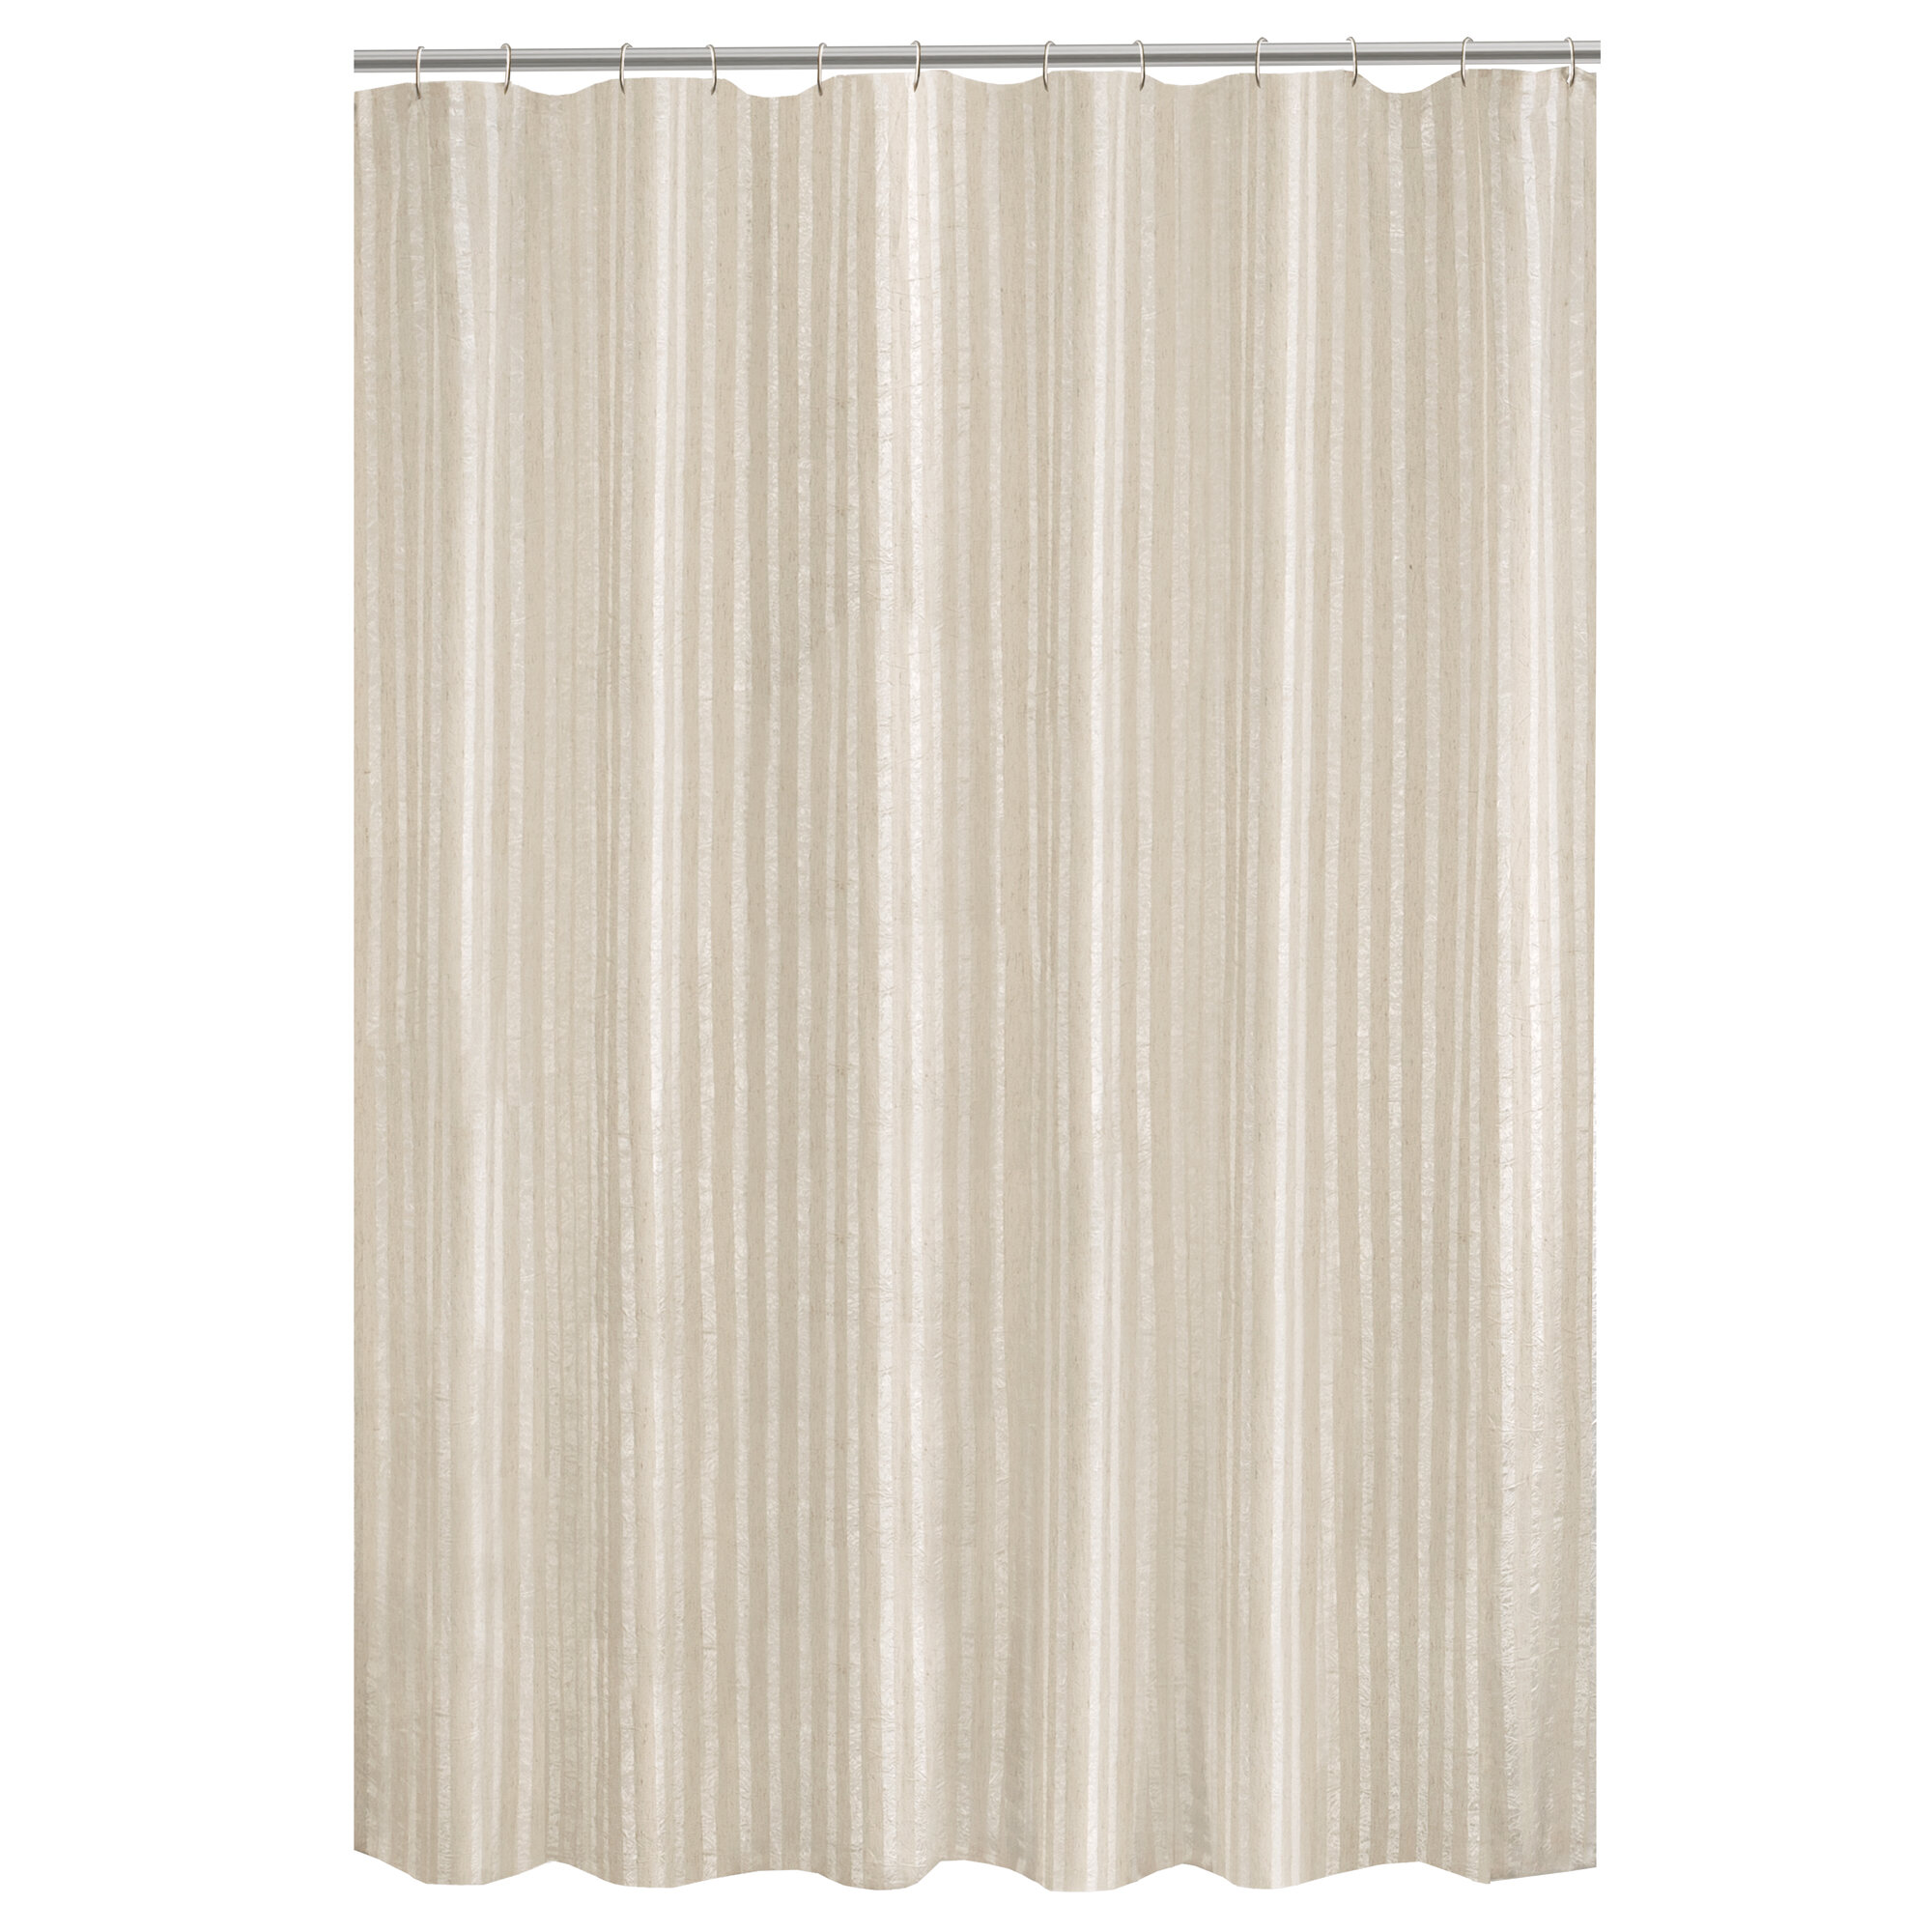 Darell Linen Stripe Fabric Single Shower Curtain